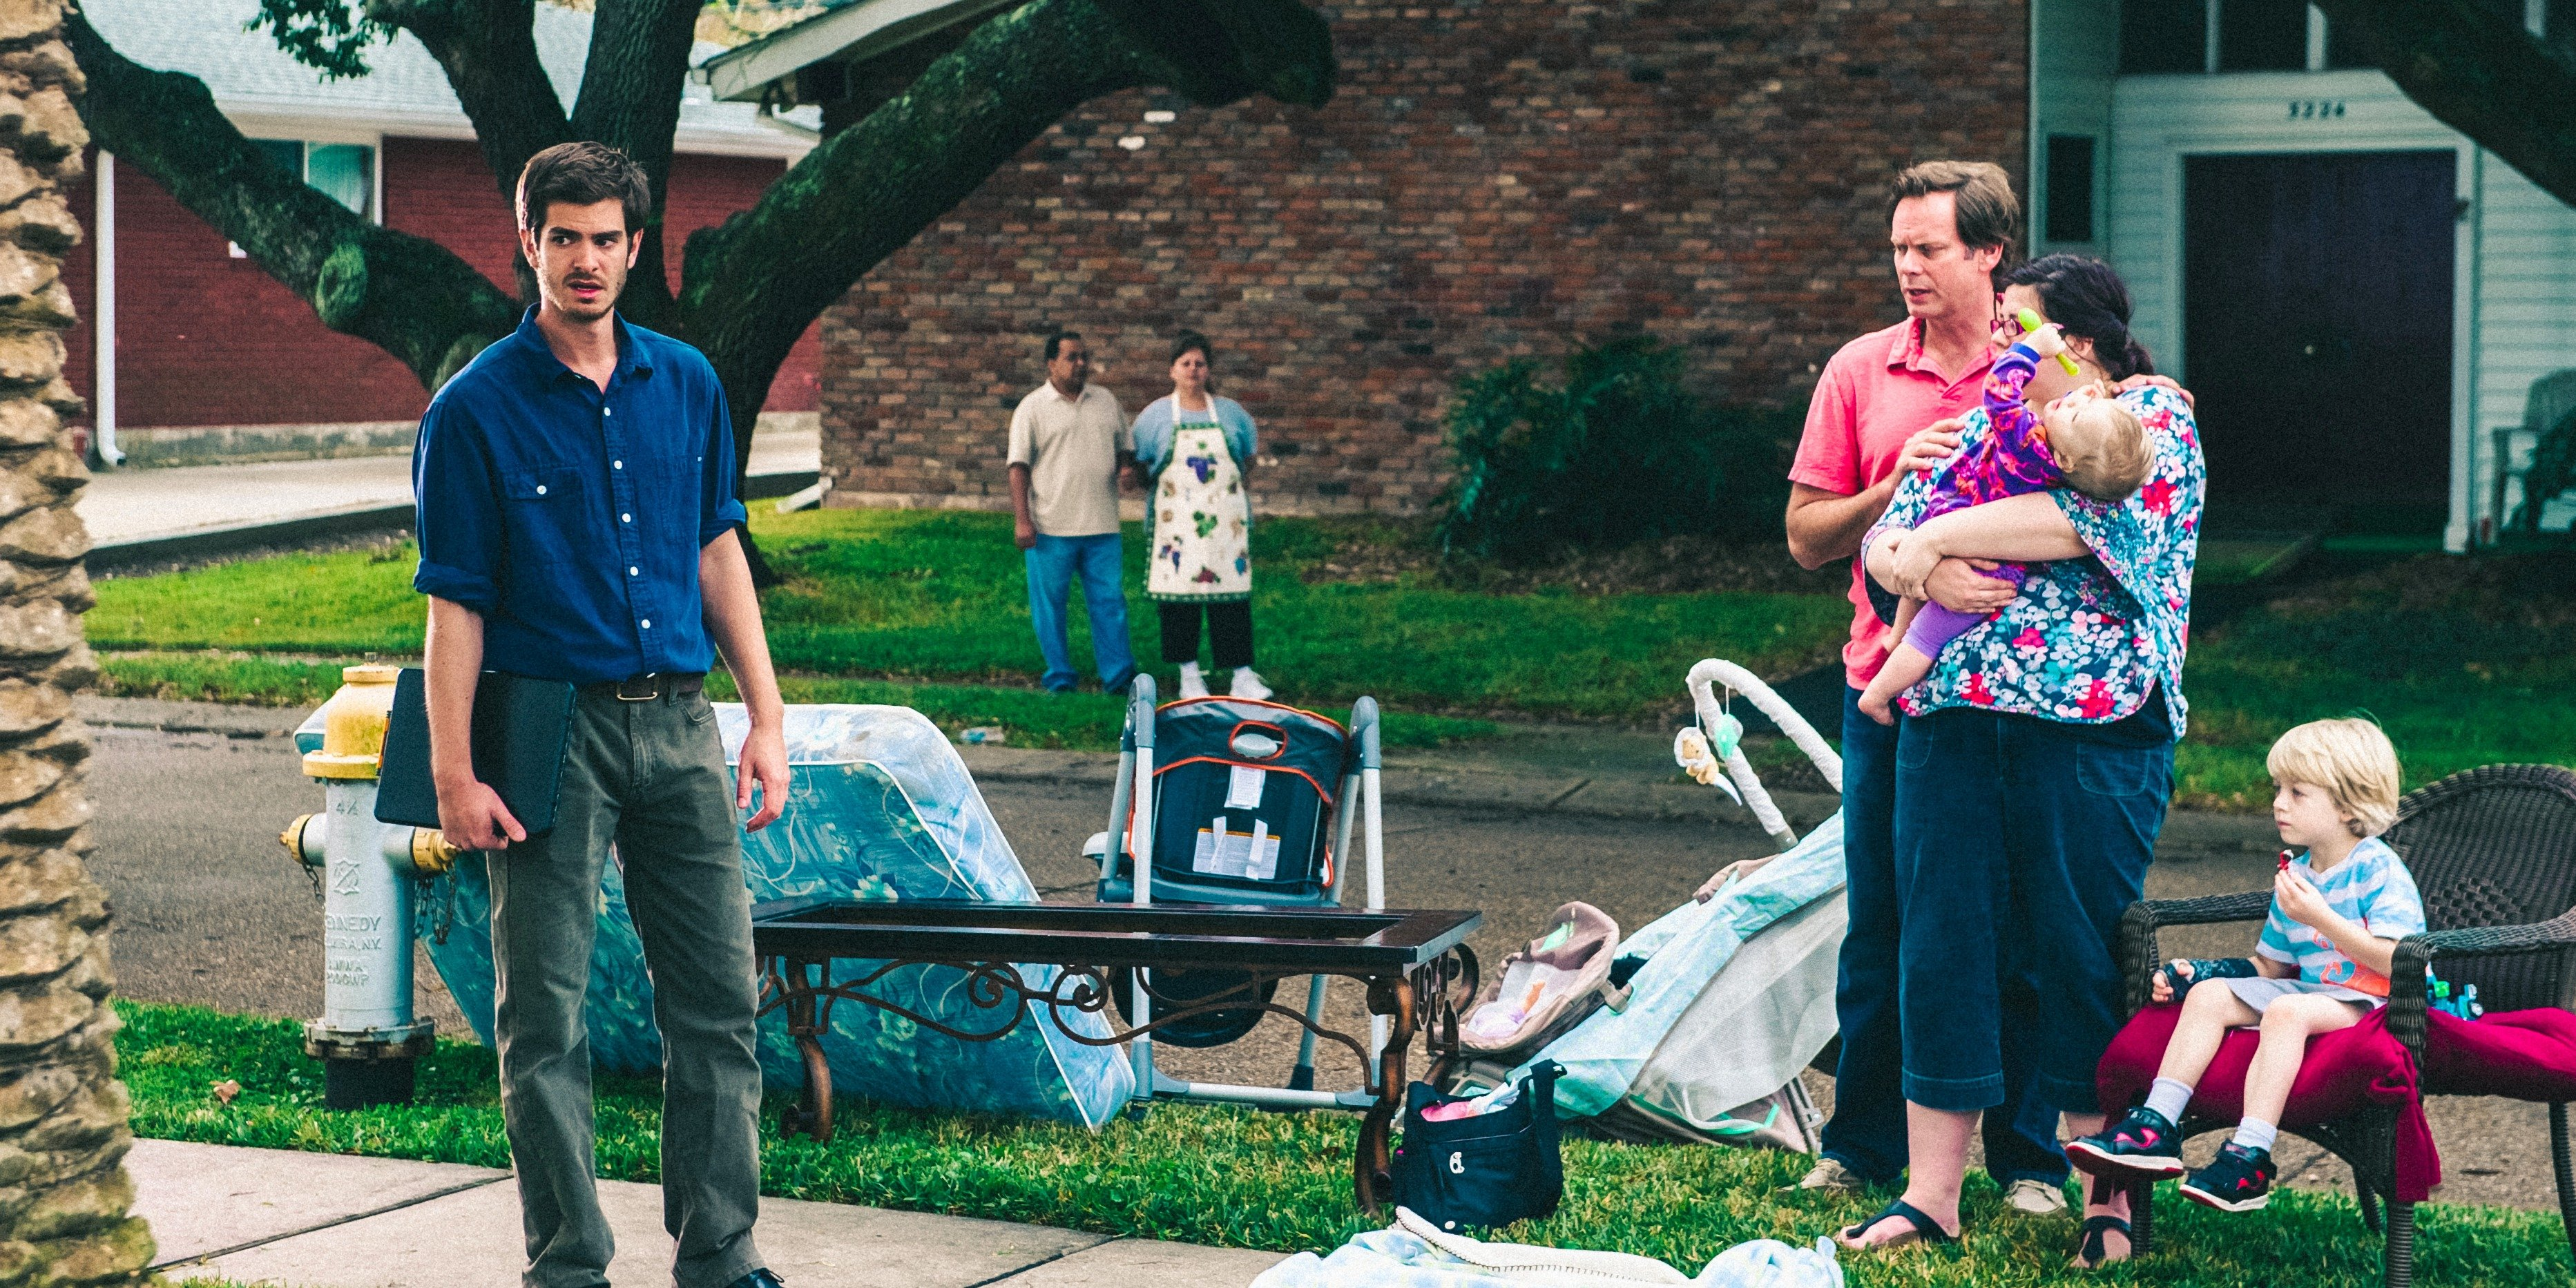 99 homes evicted family